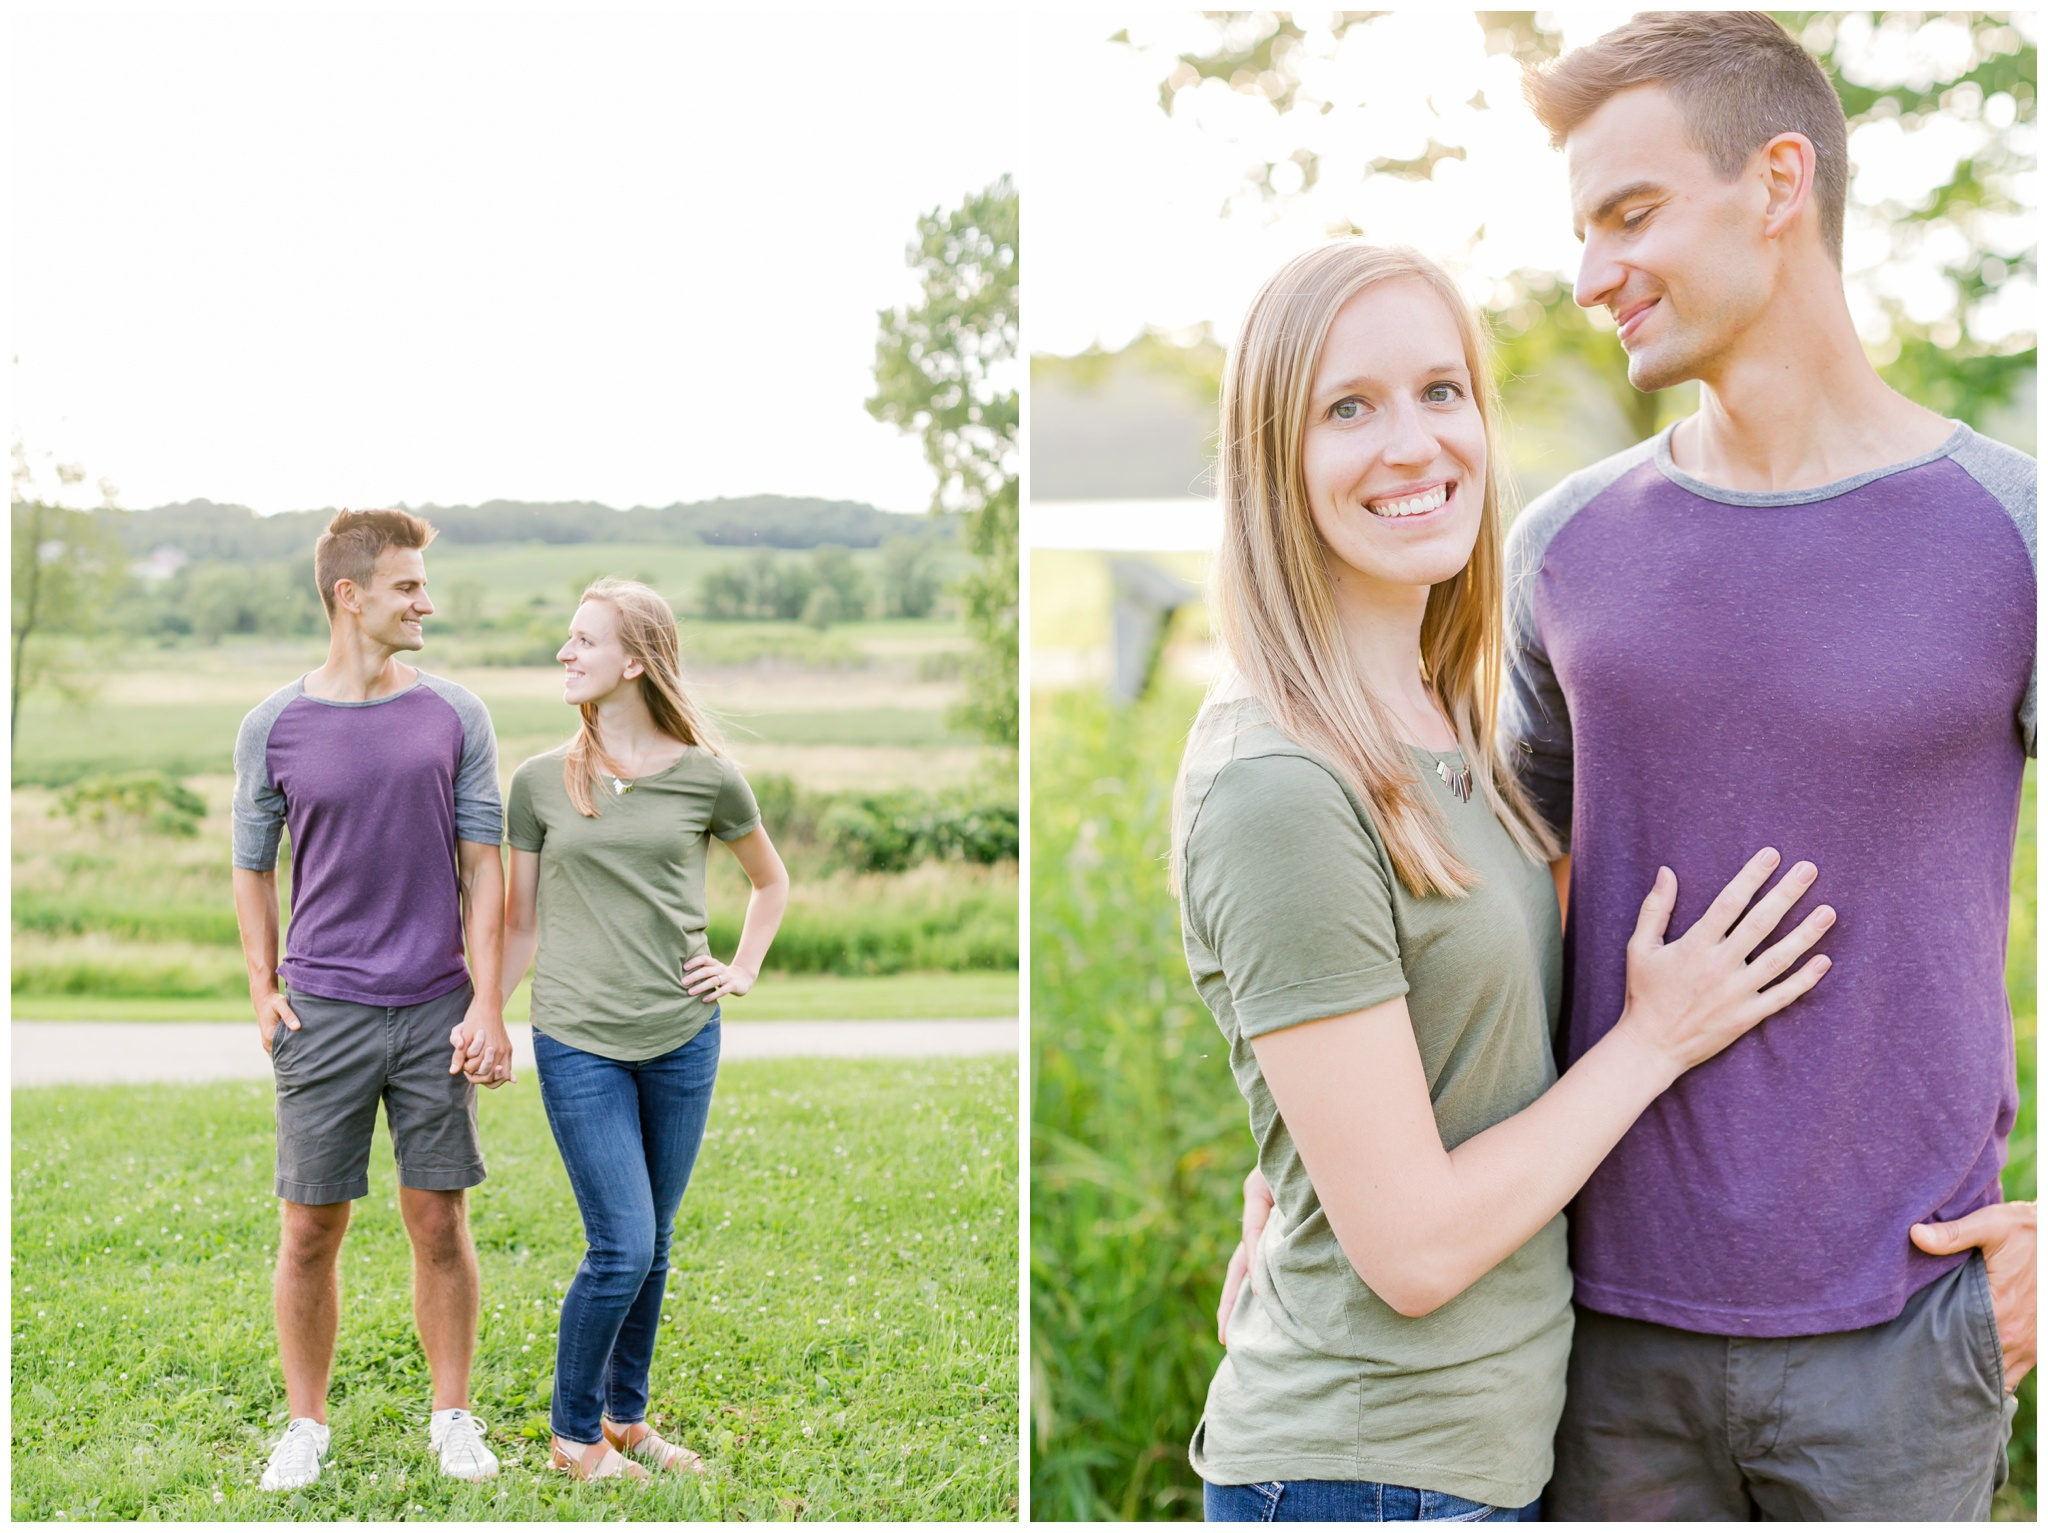 indian_lake_county_park_engagement_session_madison_wisconsin_4173.jpg